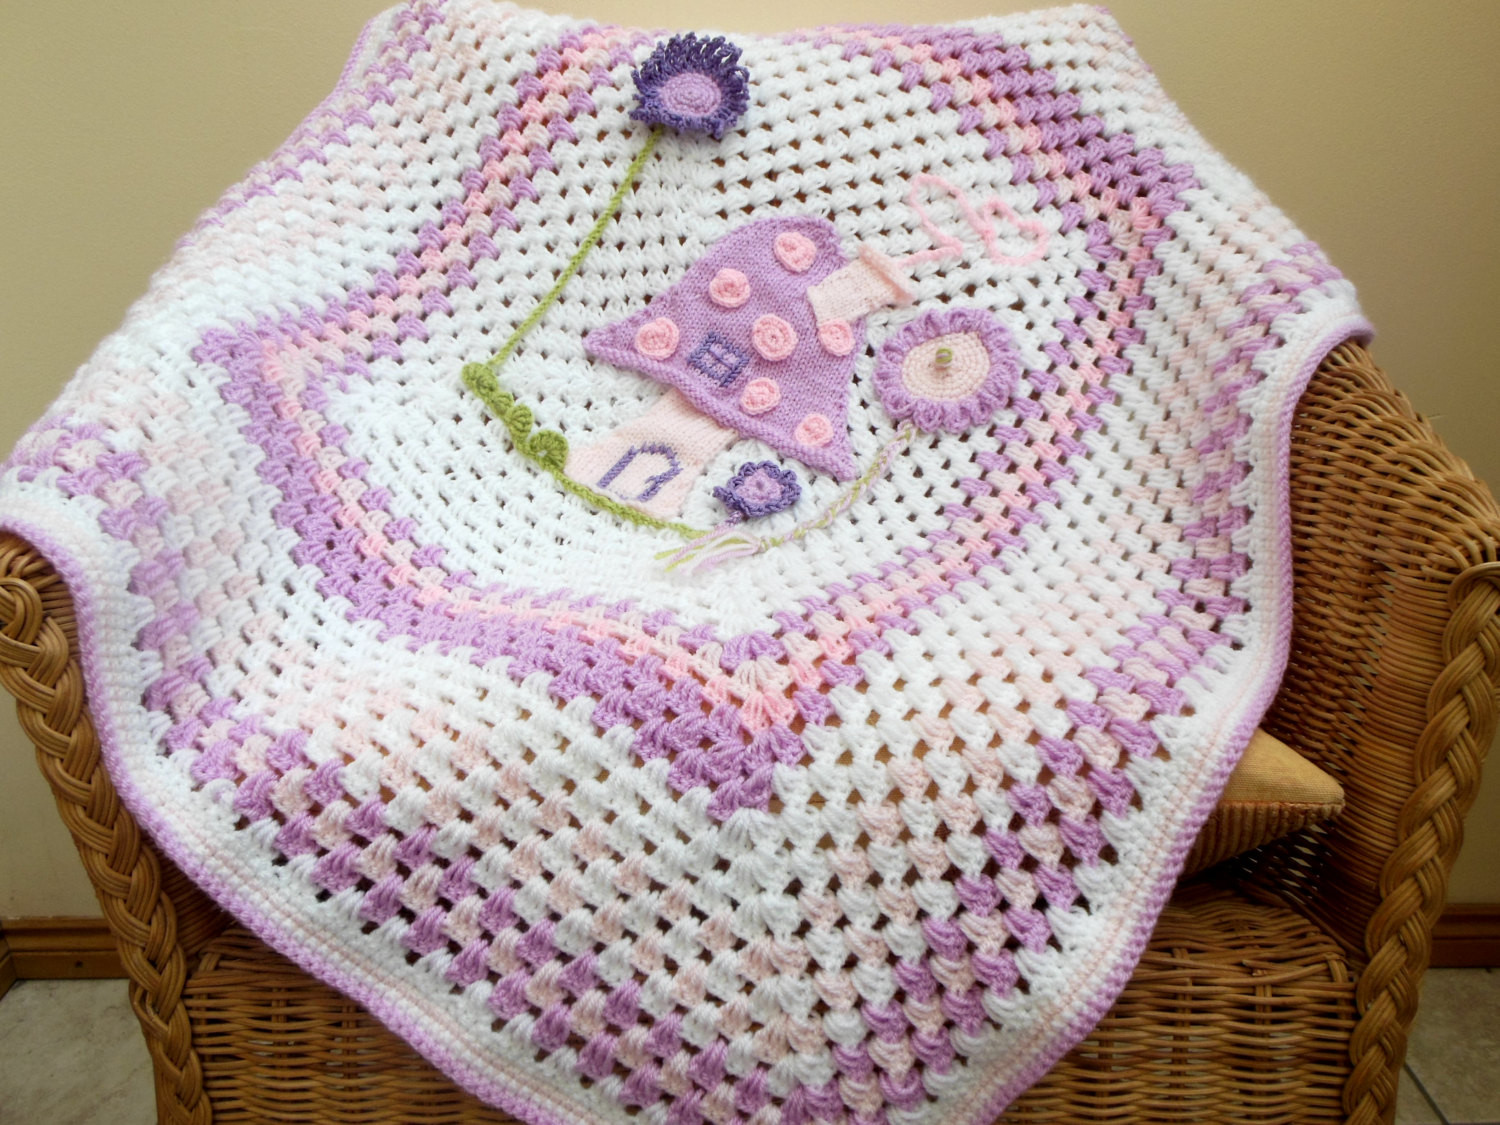 Unique Crochet Baby Blanket Picture Spring Fairy Garden T Crochet Baby Gifts Of Brilliant 47 Ideas Crochet Baby Gifts